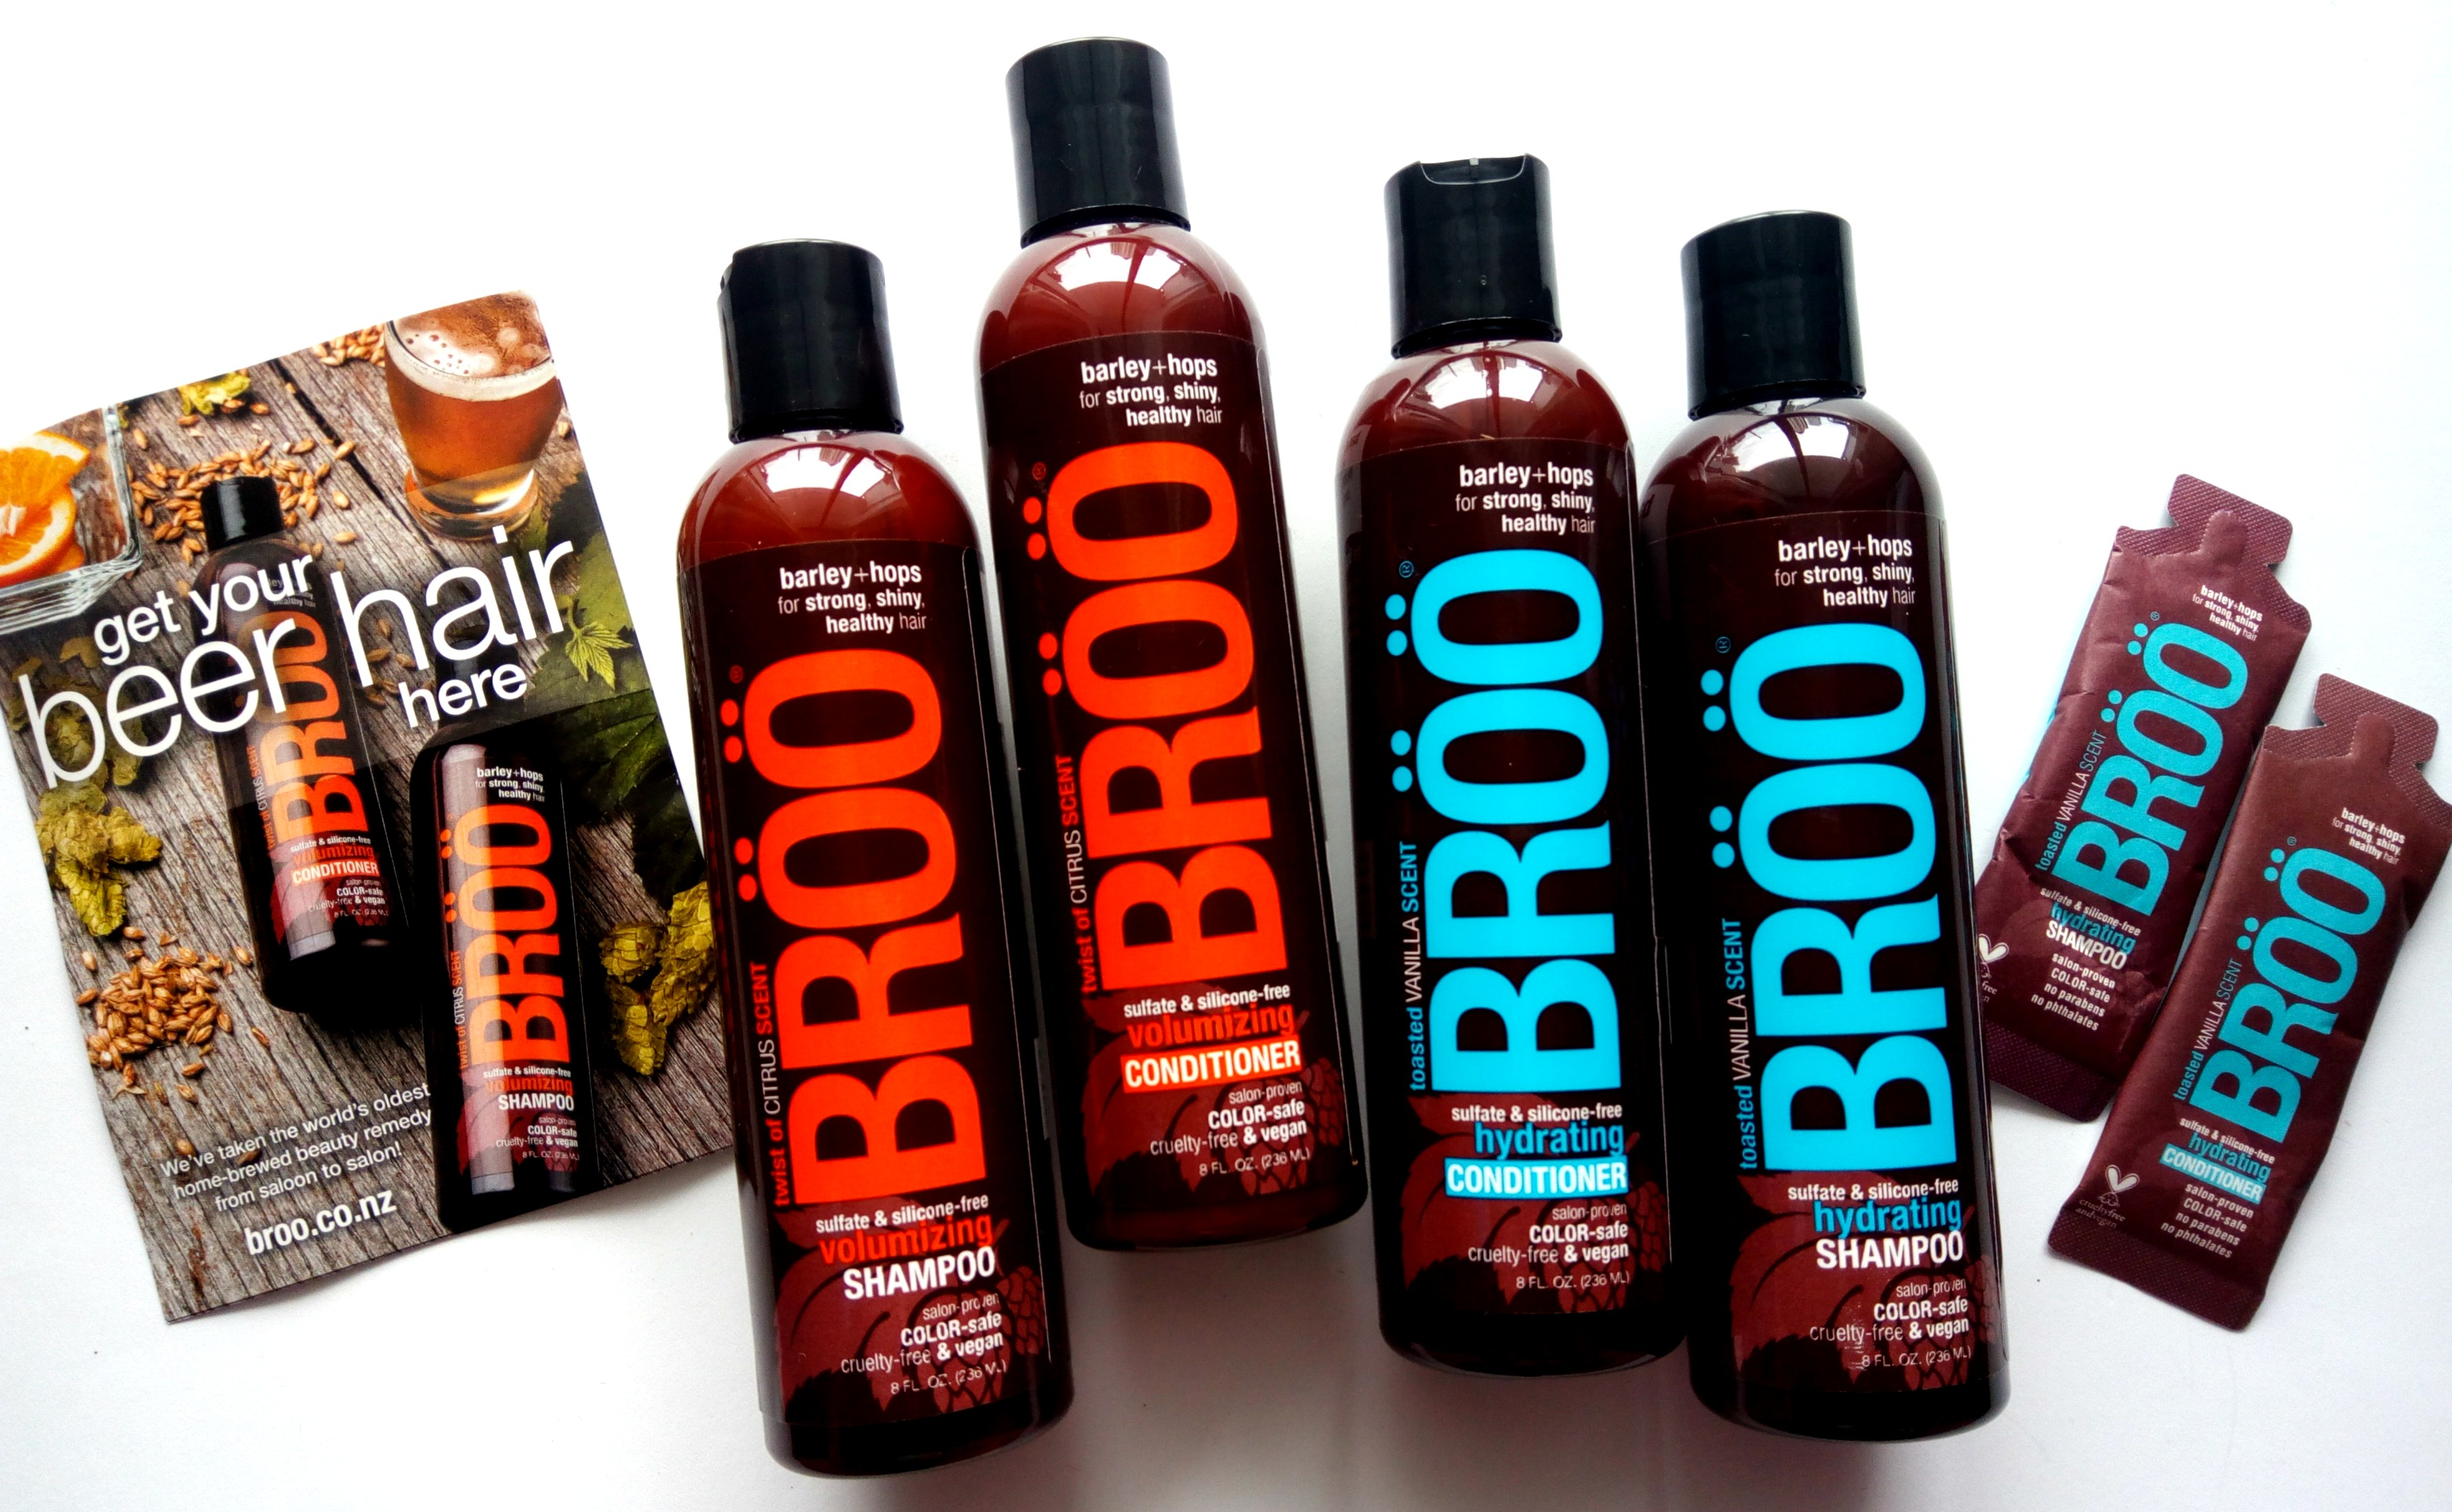 Get your Beer Hair with BRÖÖ Shampoo & Conditioner